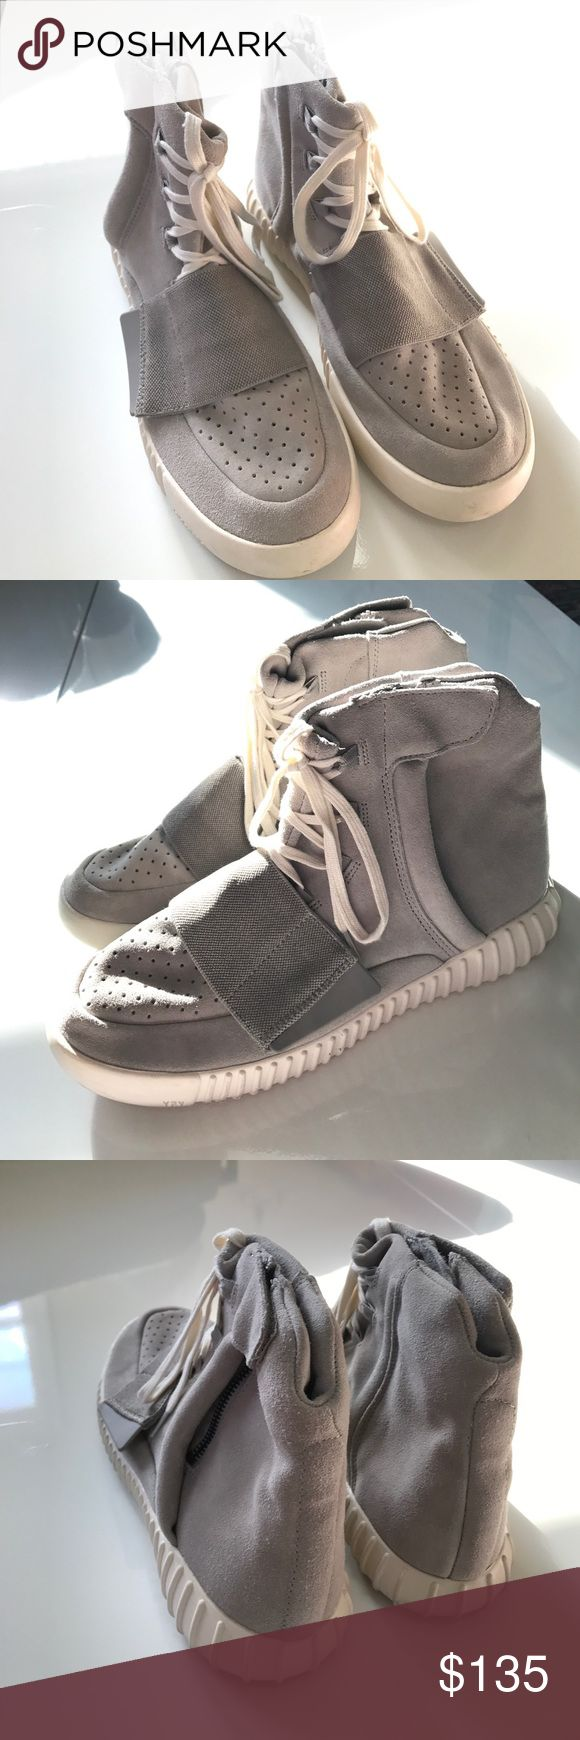 Adidas Yeezy Boost 750 Kanye West Adidas Yeezy Boost 750 Sneaker • Worn once - great condition • Comes with dust bags for each shoe and white and yeezy laces (both pictured) • Not authentic, but from the same factory that the real Yeezy's are made in Adidas Shoes Sneakers